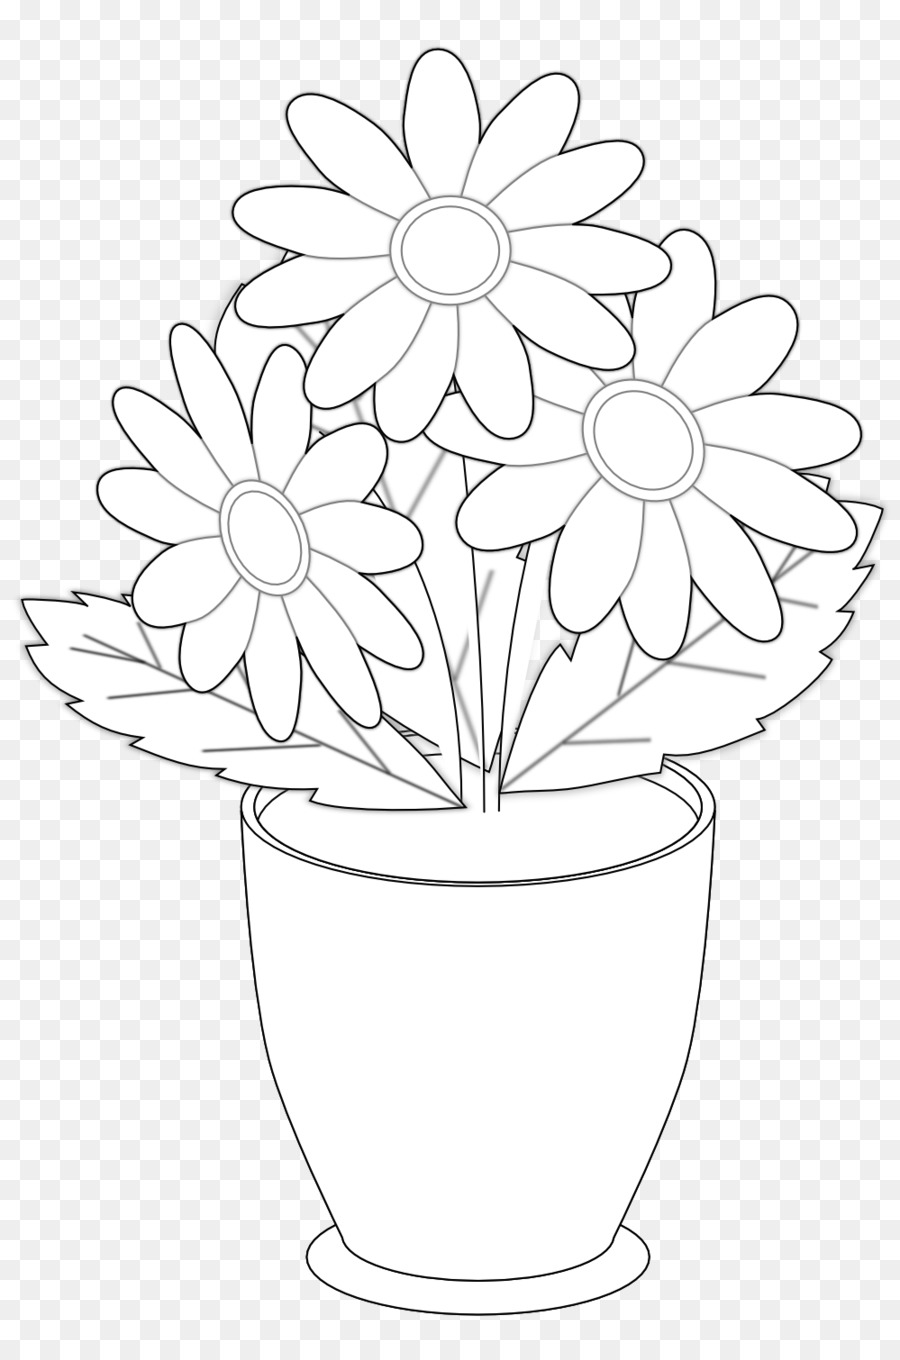 Drawing Vase Flower Black And White Clip Art Flower Vases With